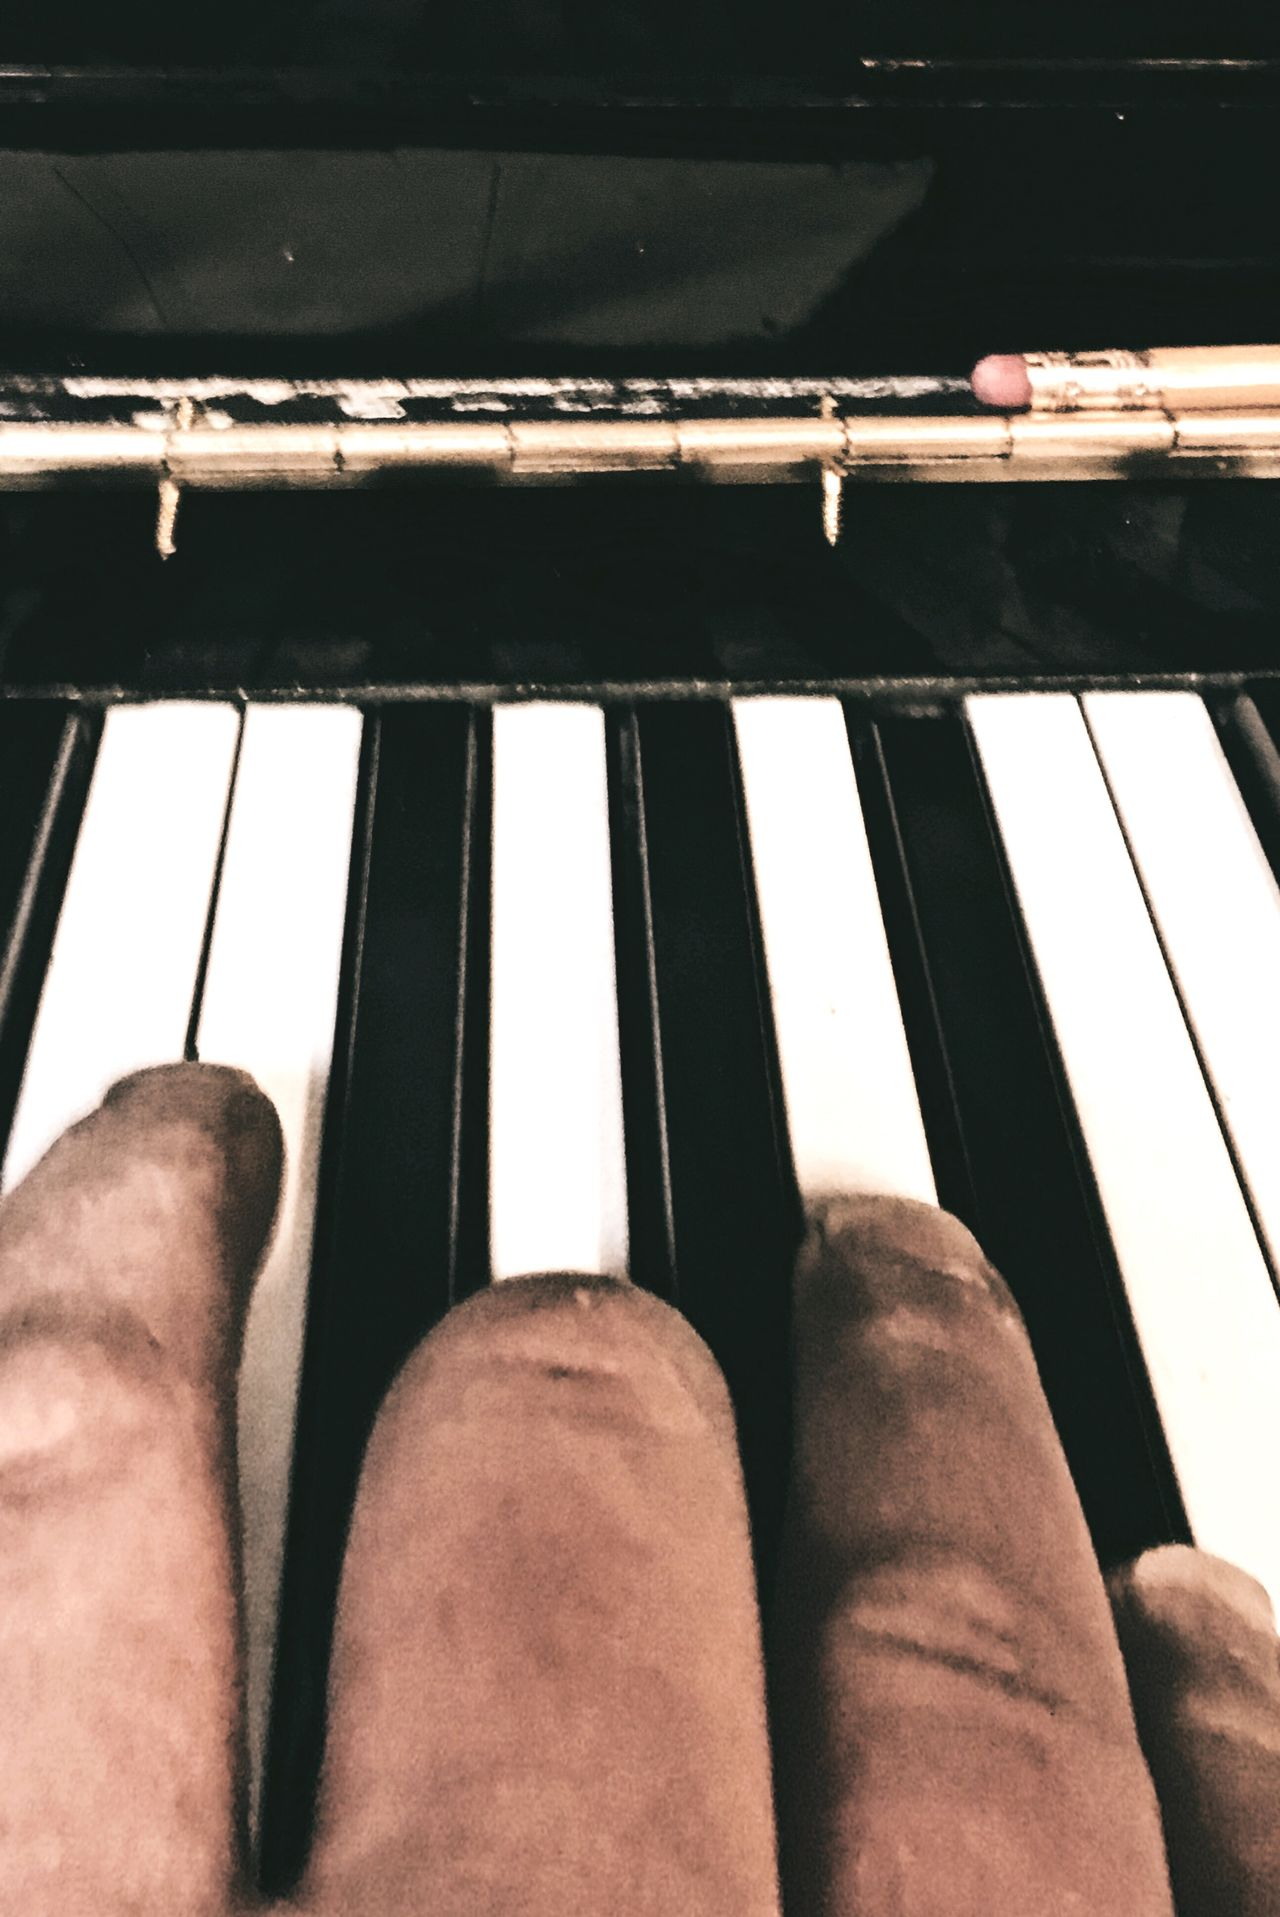 Piano Moments Piano Hand Fingers Playing Piano Chord Chords Music Musician Piano Key Musical Instrument Close-up Human Hand Human Body Part Arts Culture And Entertainment Indoors  One Person Pianist Classical Music Day